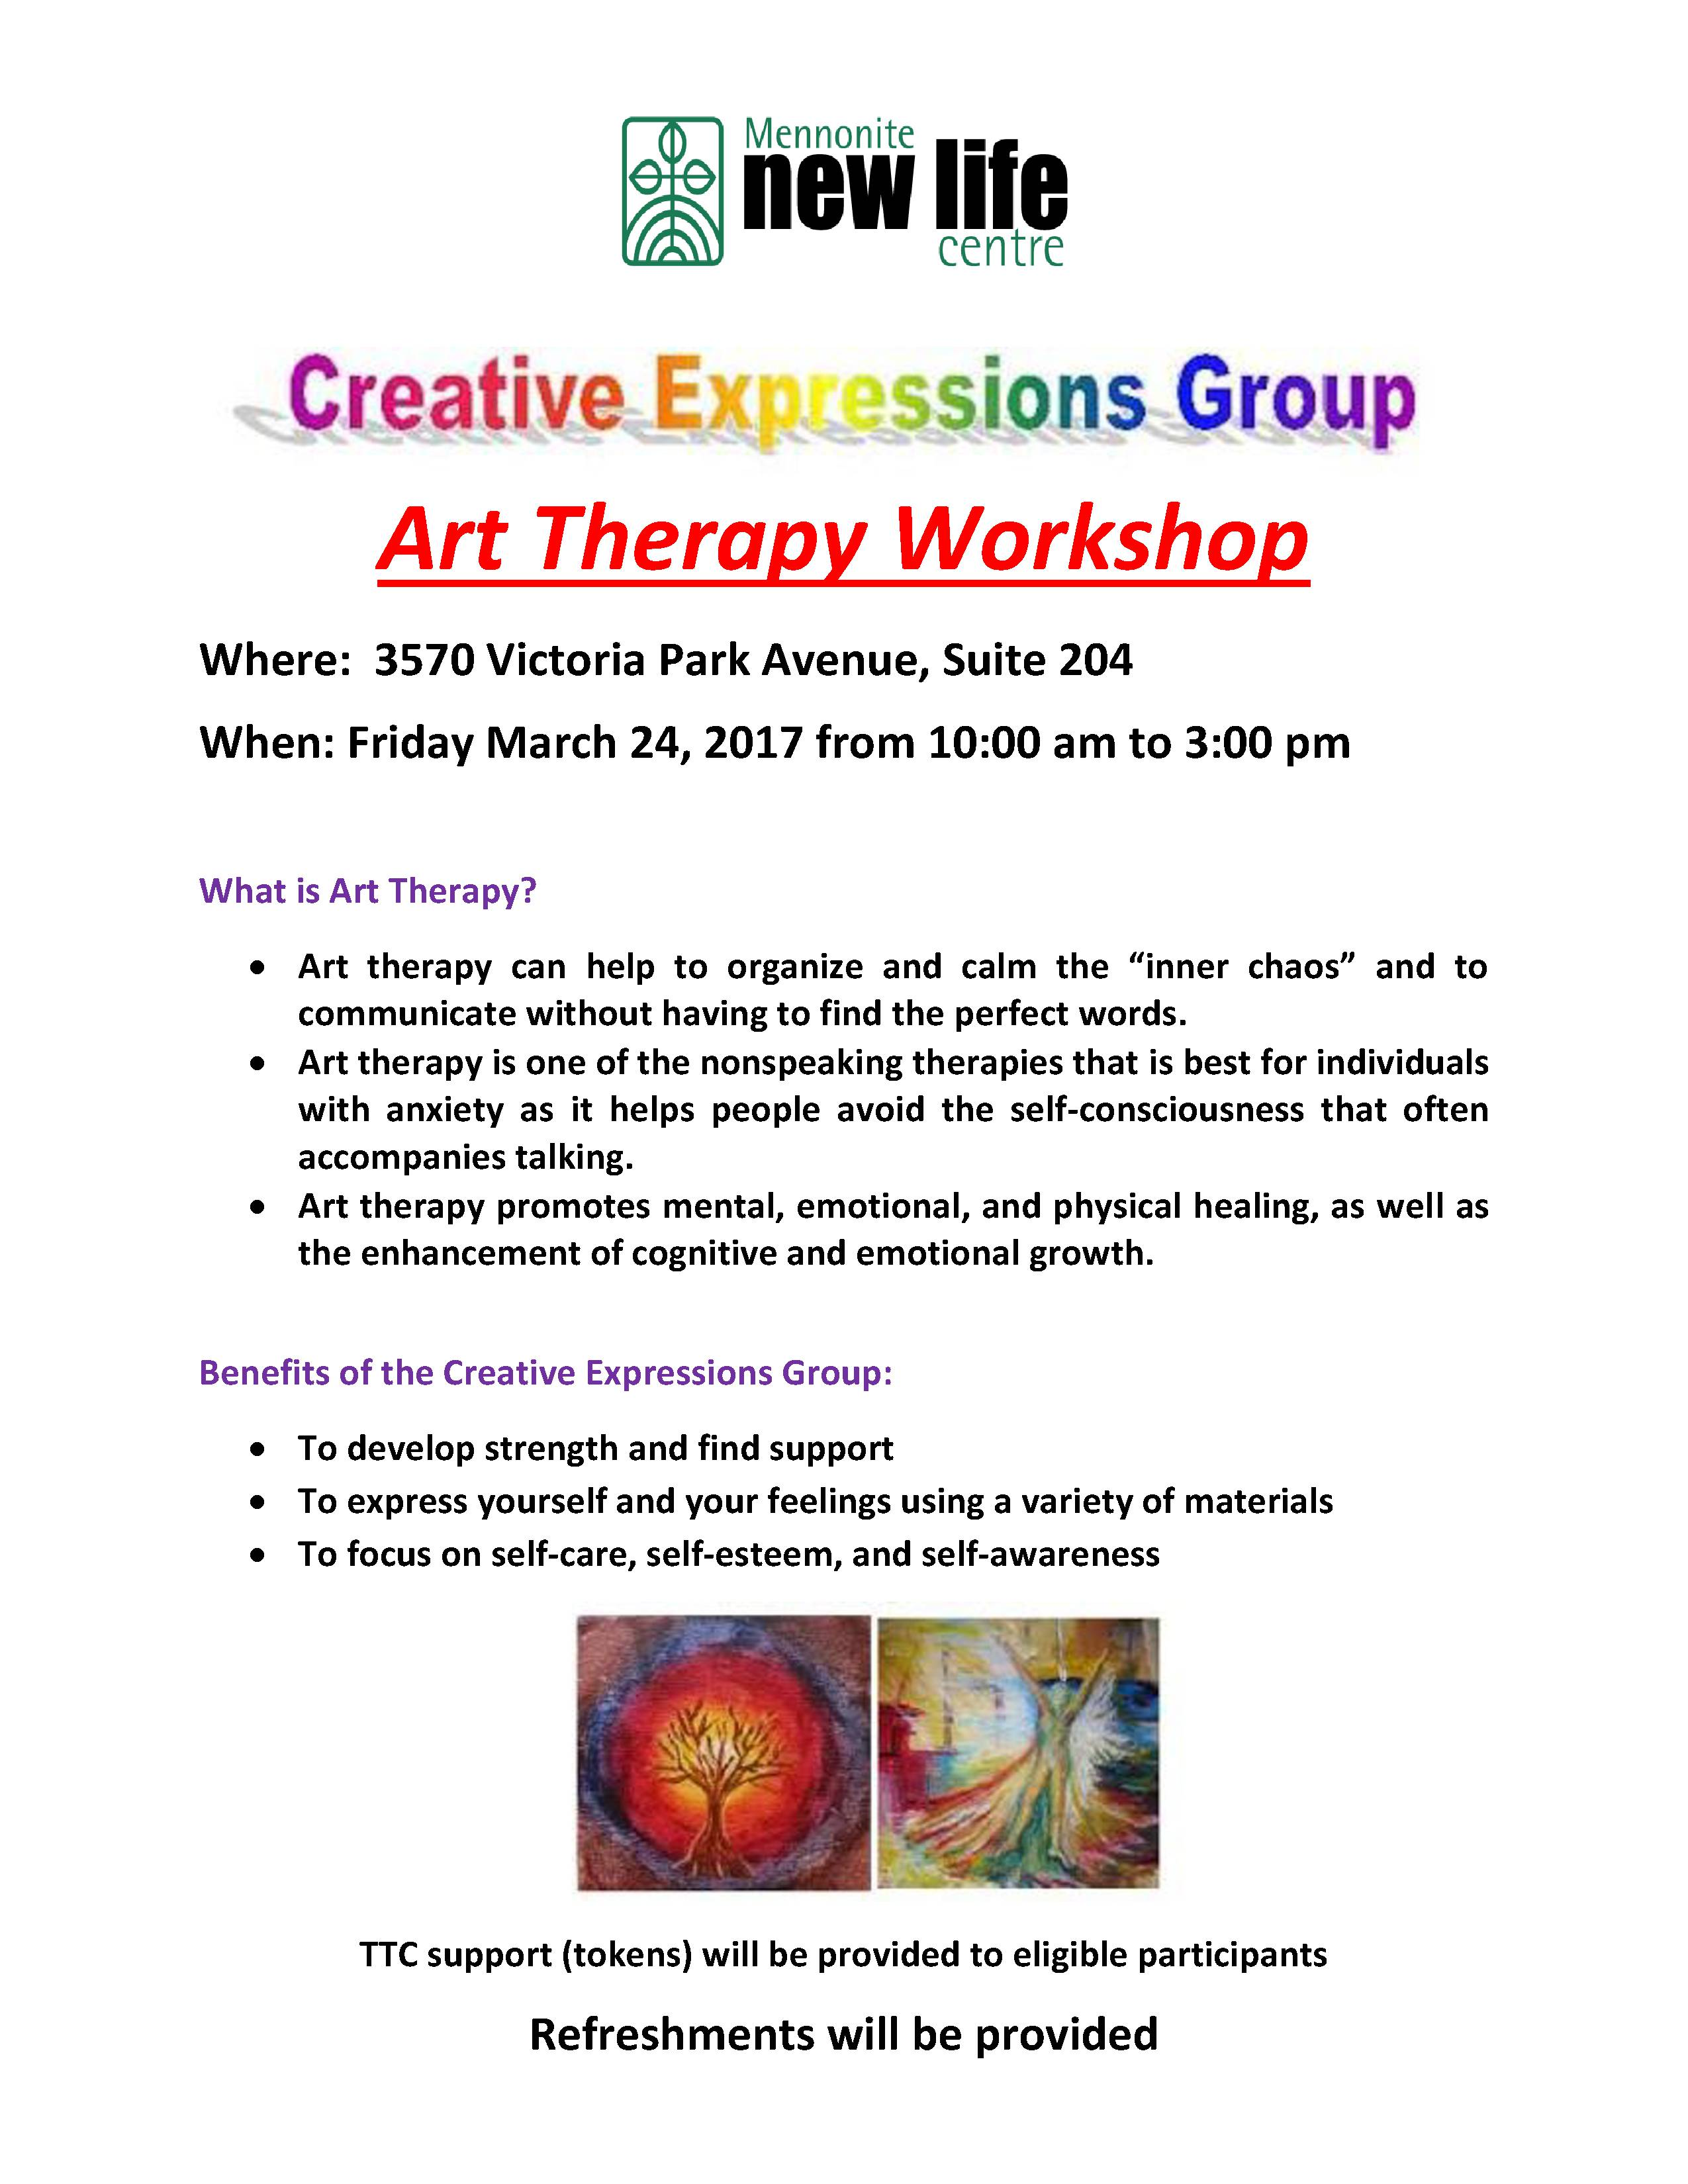 Art Therapy Workshop: Friday, March 24, 2017 – MNLCT